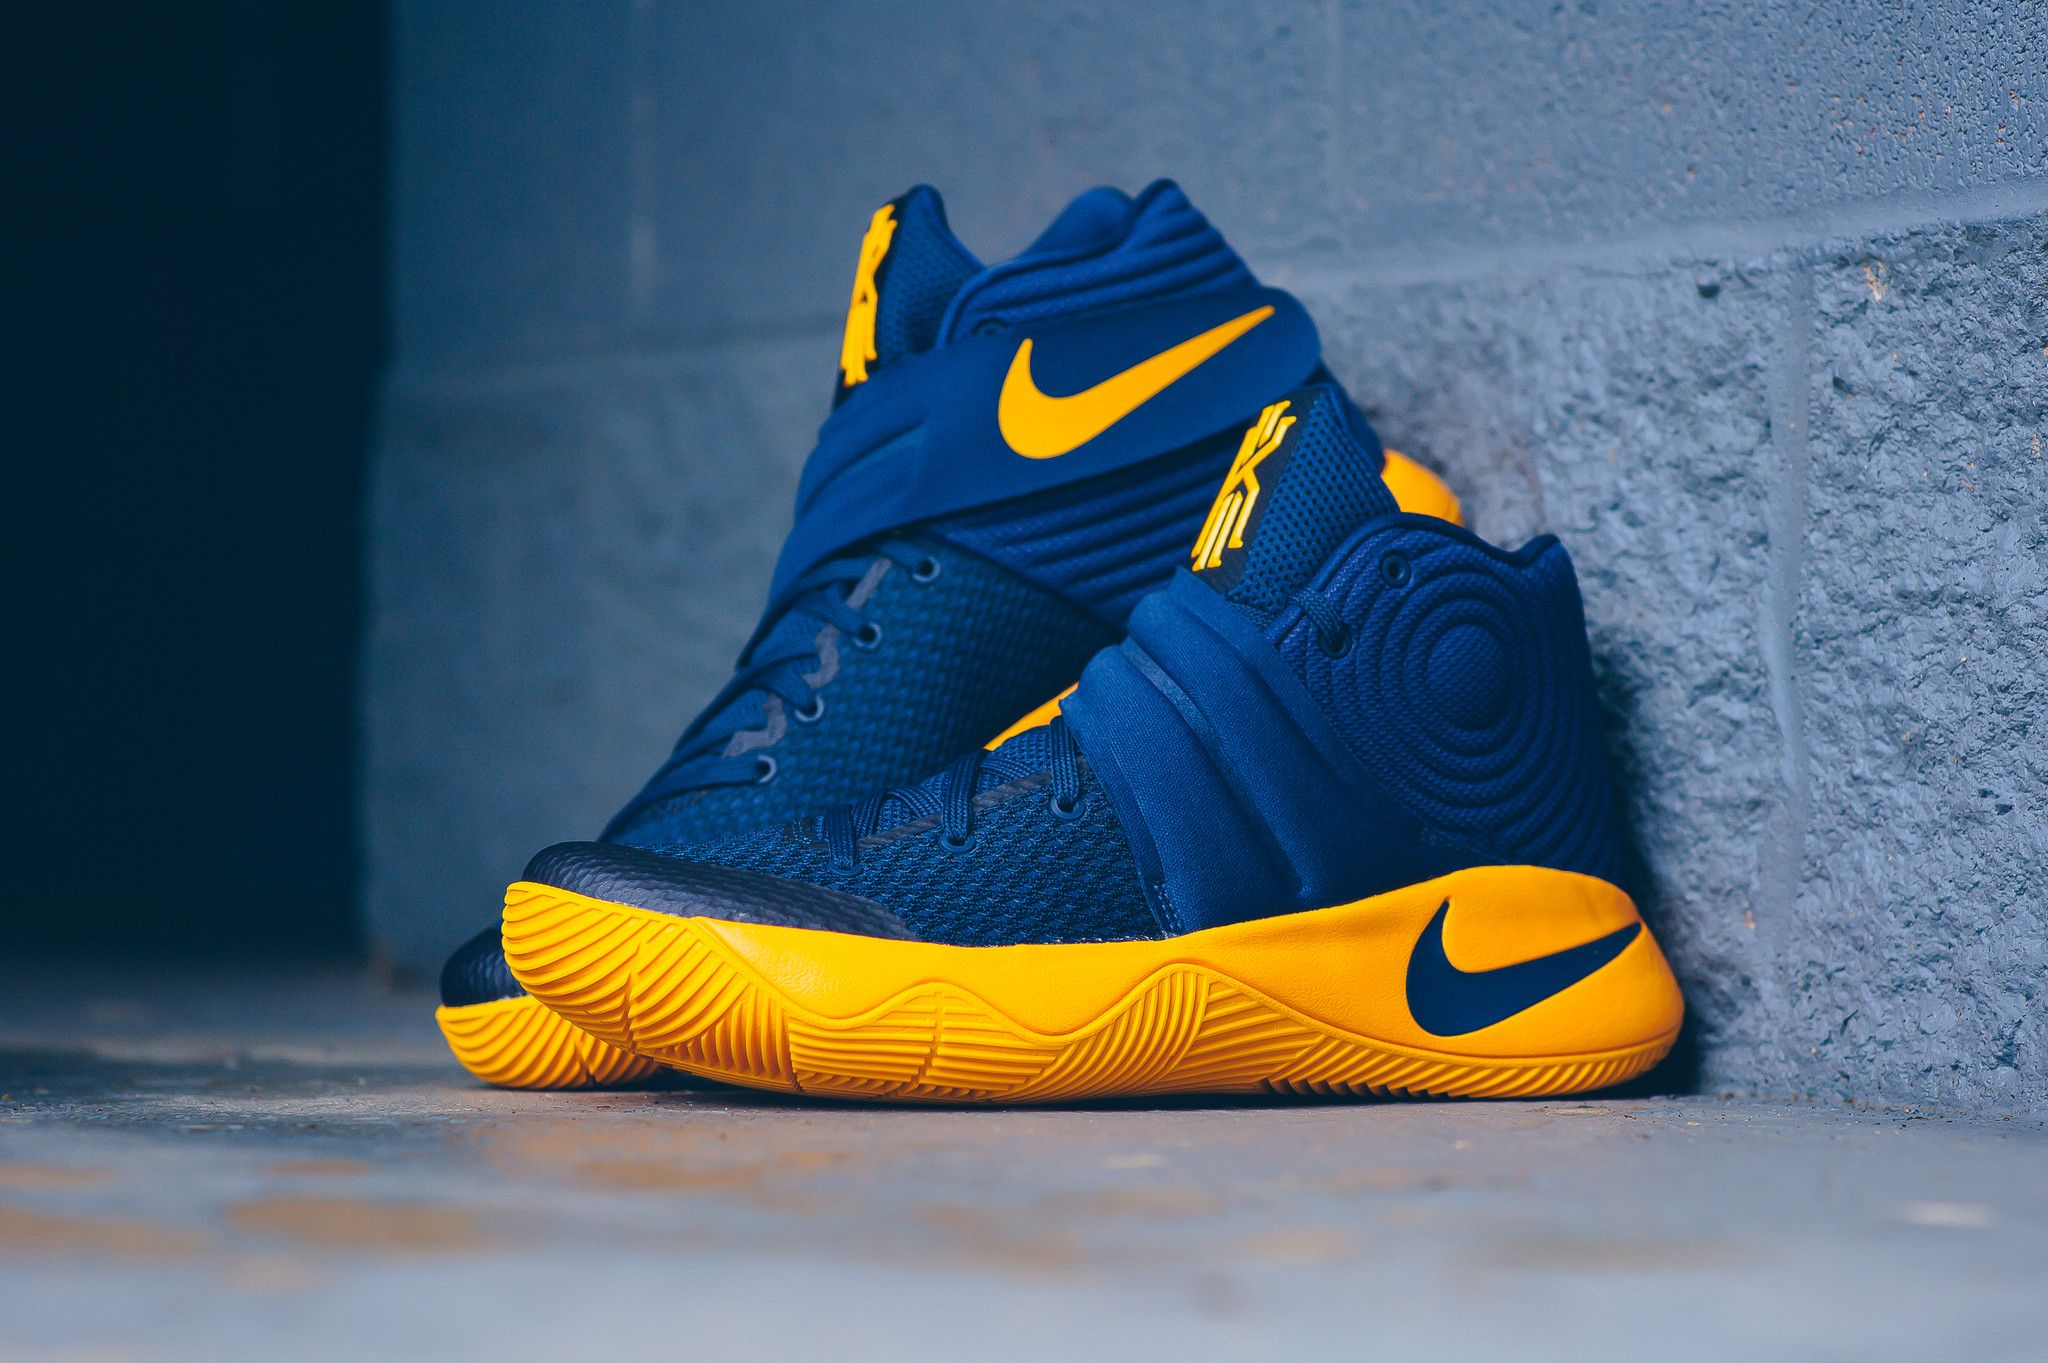 kyrie irving shoes nike store